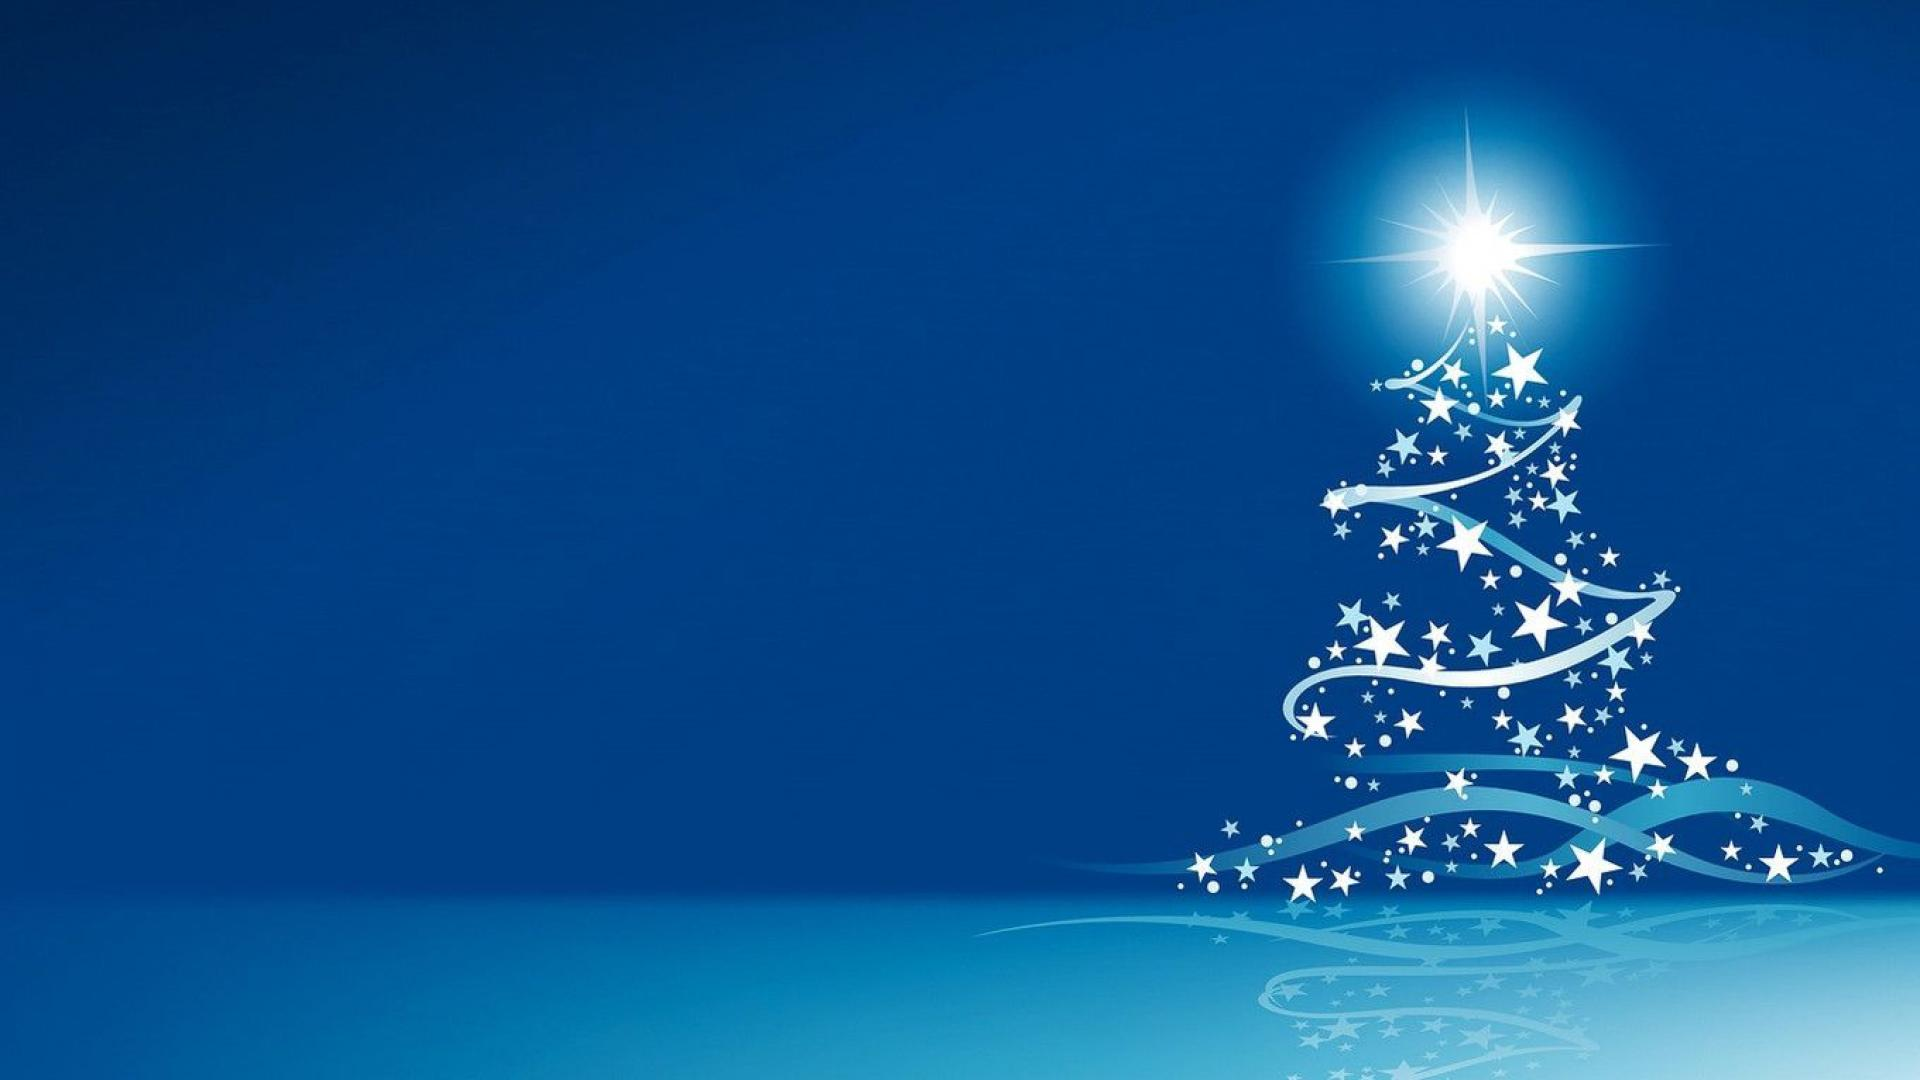 Christmas tree vector art wallpaper 1920x1080